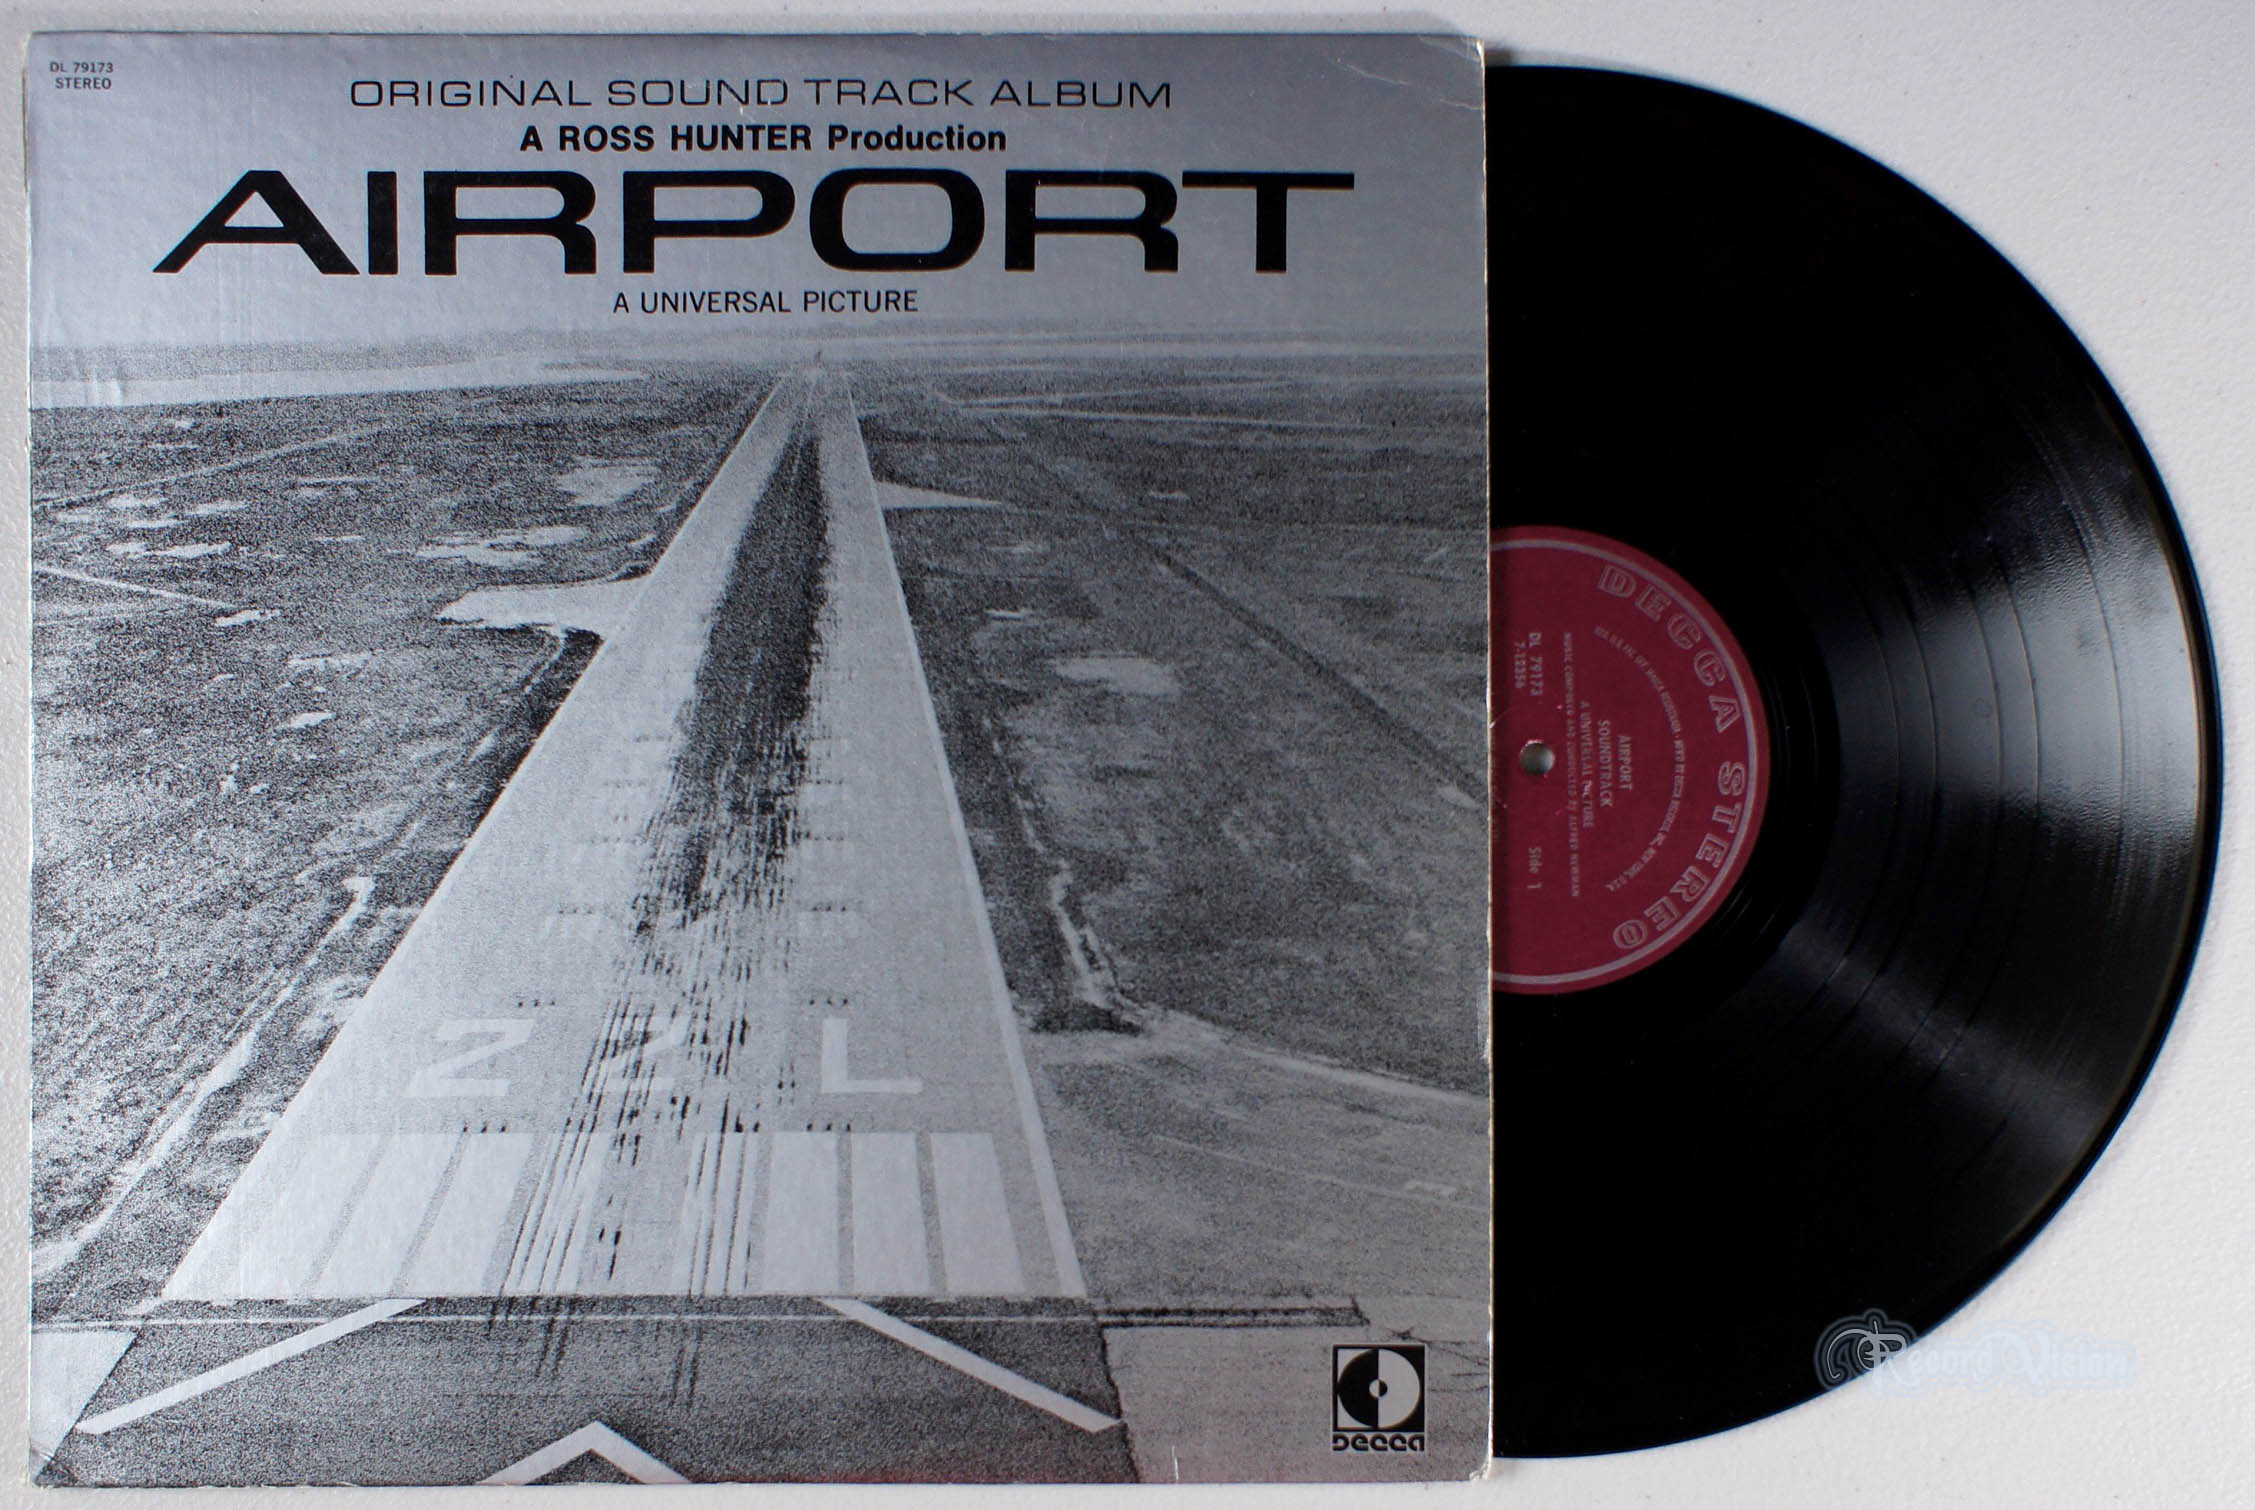 ASSORTED (SOUNDTRACK) - Airport - 33T